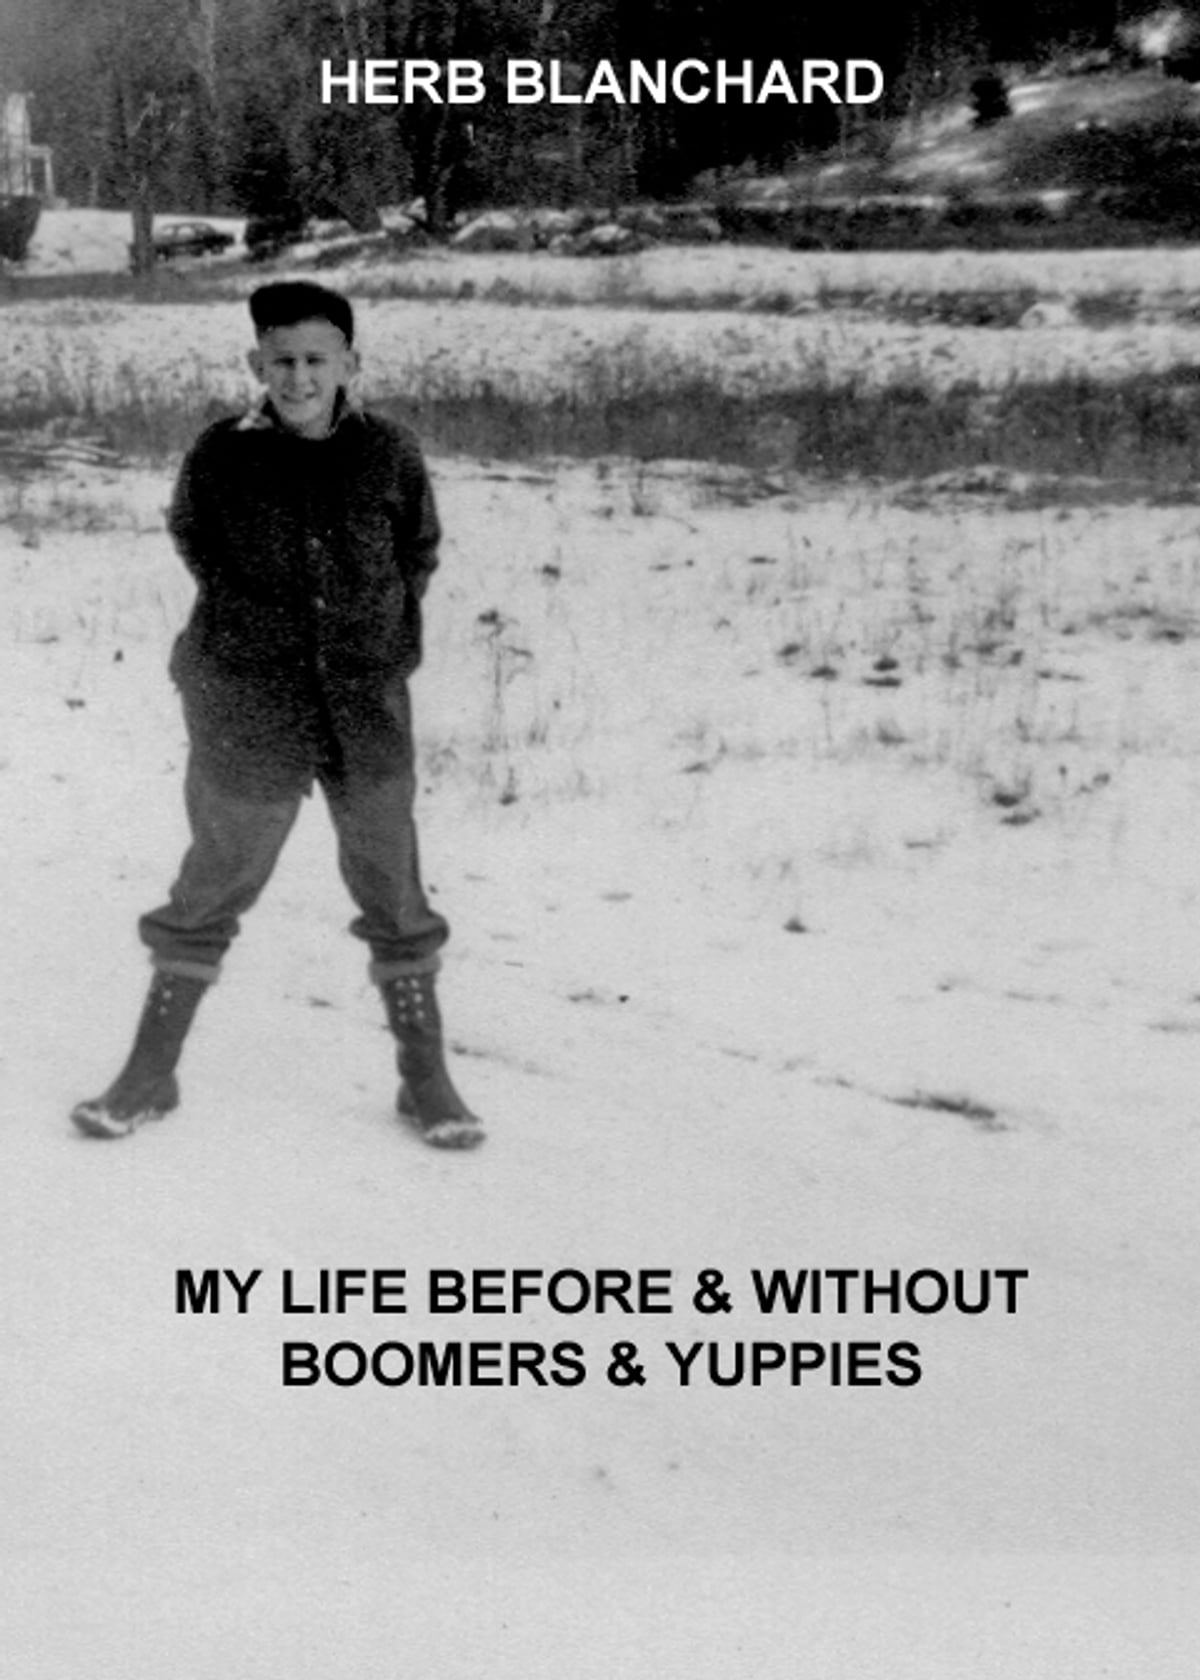 My life before without boomers yuppies ebook by herb blanchard my life before without boomers yuppies ebook by herb blanchard 9781458112477 rakuten kobo fandeluxe PDF